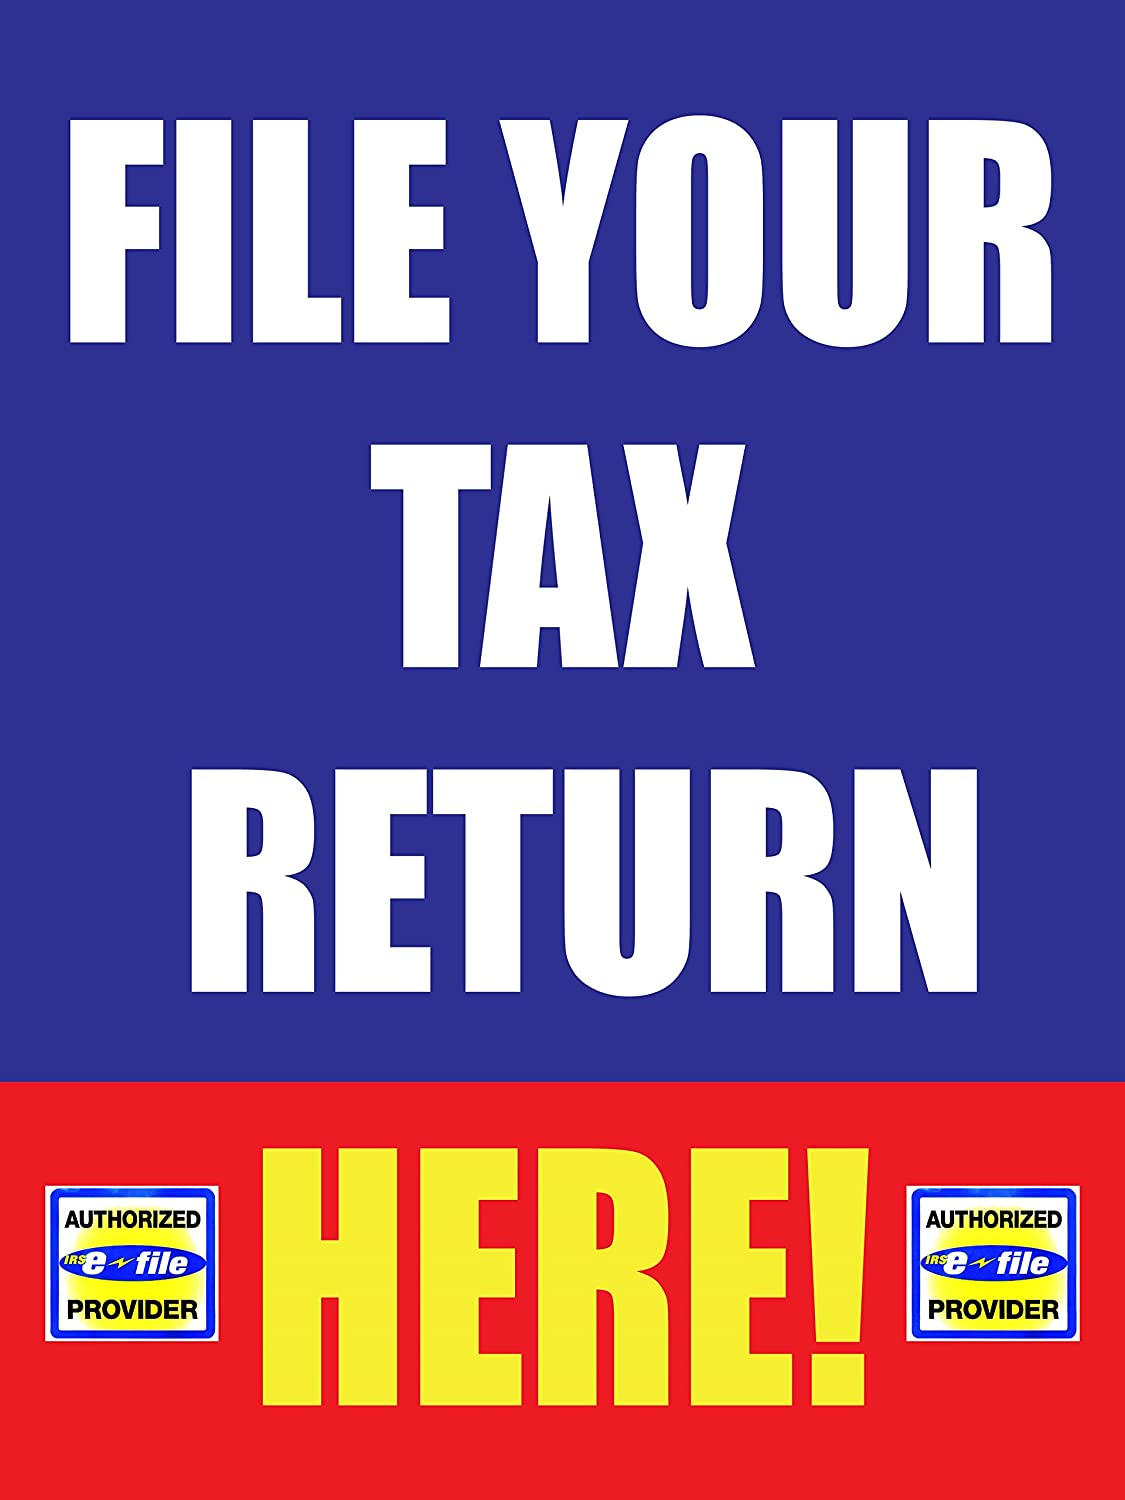 File Your Tax Return Here Business Store Retail Signs, 18